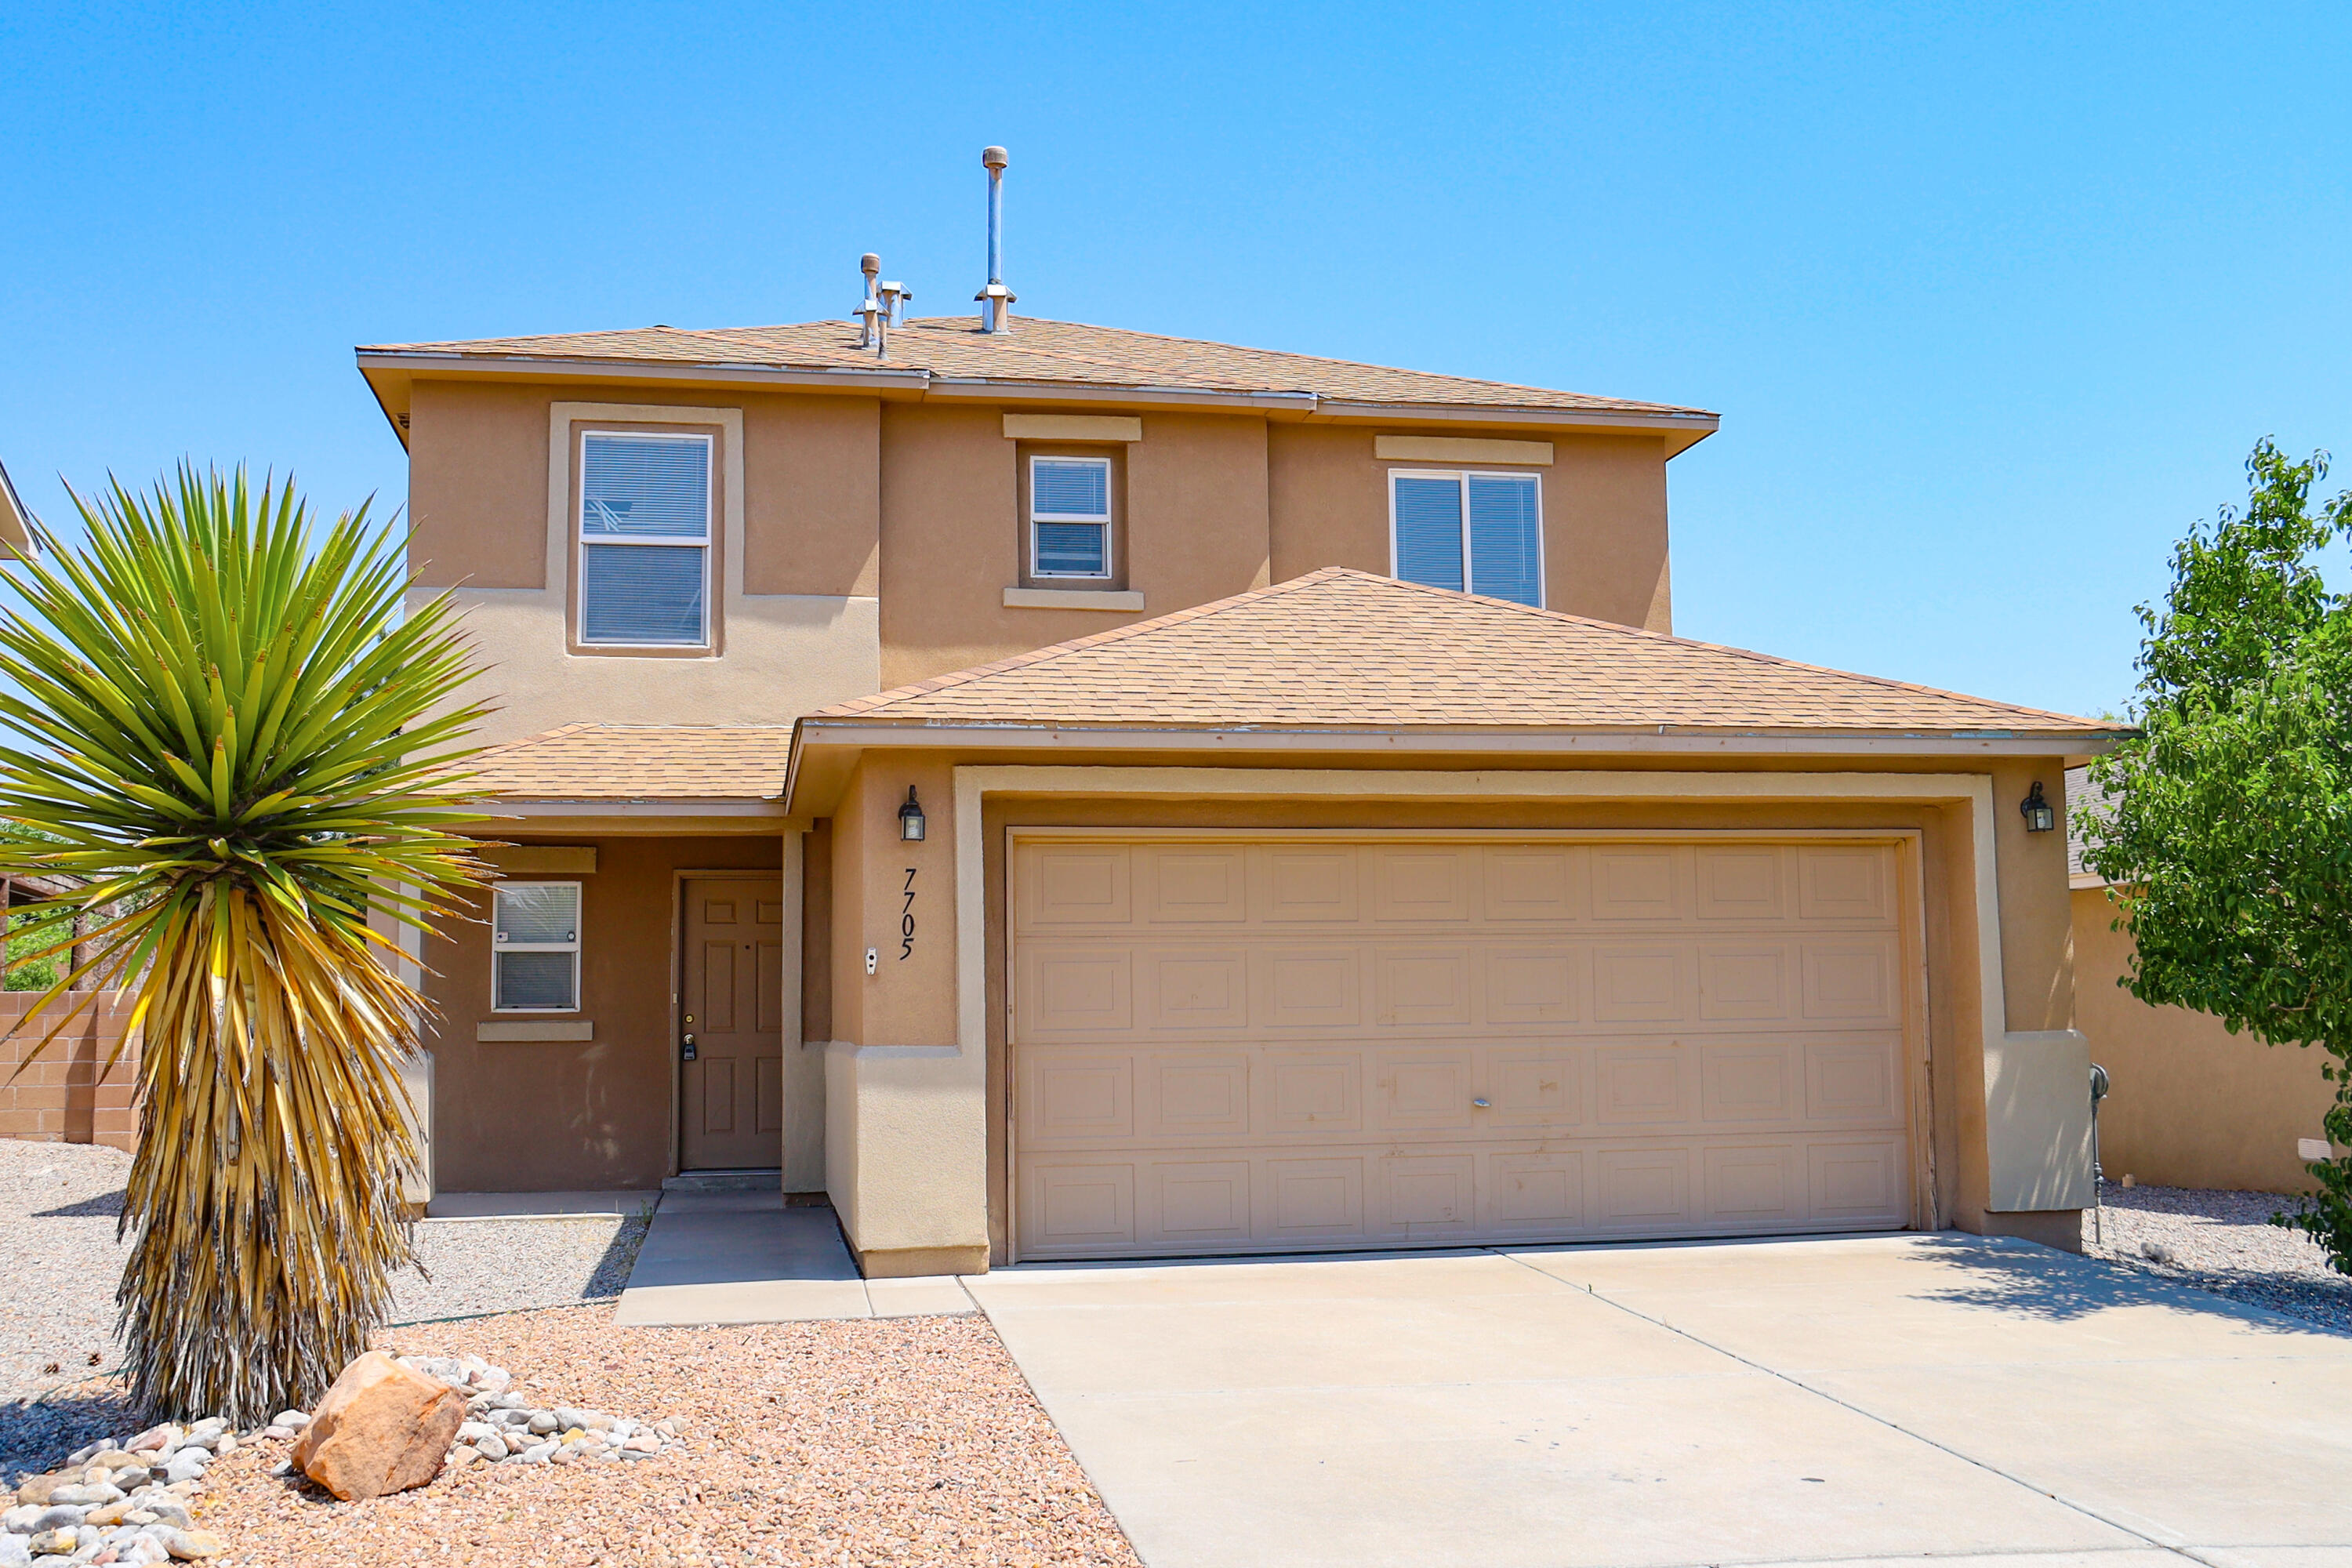 Spacious 3 BR beauty in desirable Ventana Ranch Community.  Open floor plan with dual living areas.  Kitchen offers plenty of work space and abundant cabinets.  Nicely sized master bedroom too.  Tiled floors & freshly painted interior.  Ready for new owner!